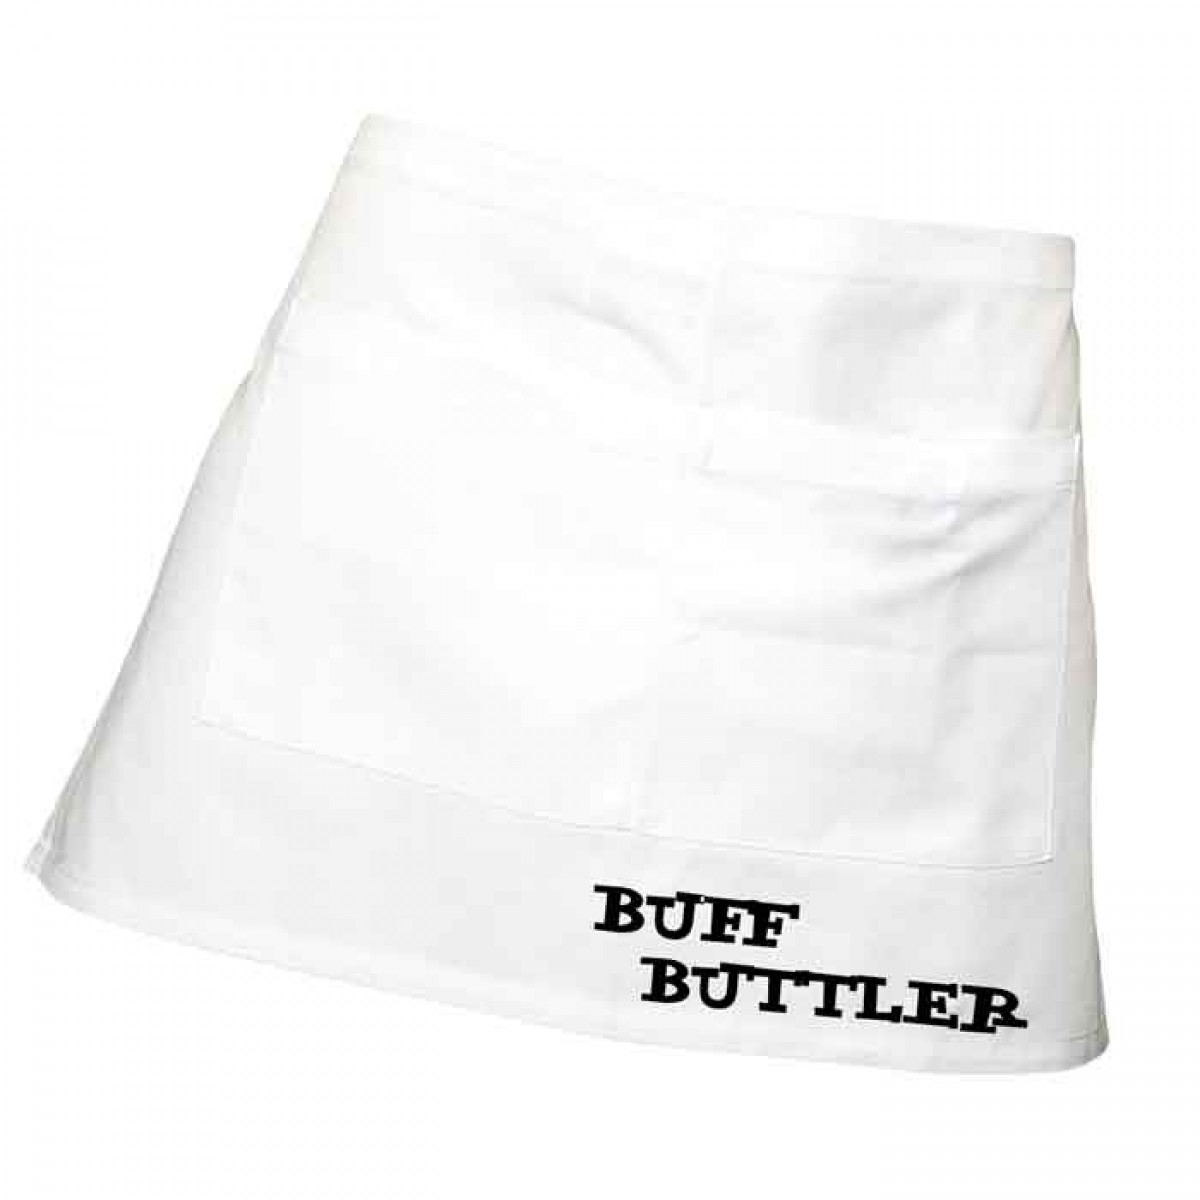 White apron meals - Mens Fun Buff Butler Apron Add Spice To Your Meals 100 Cotton Black Or White